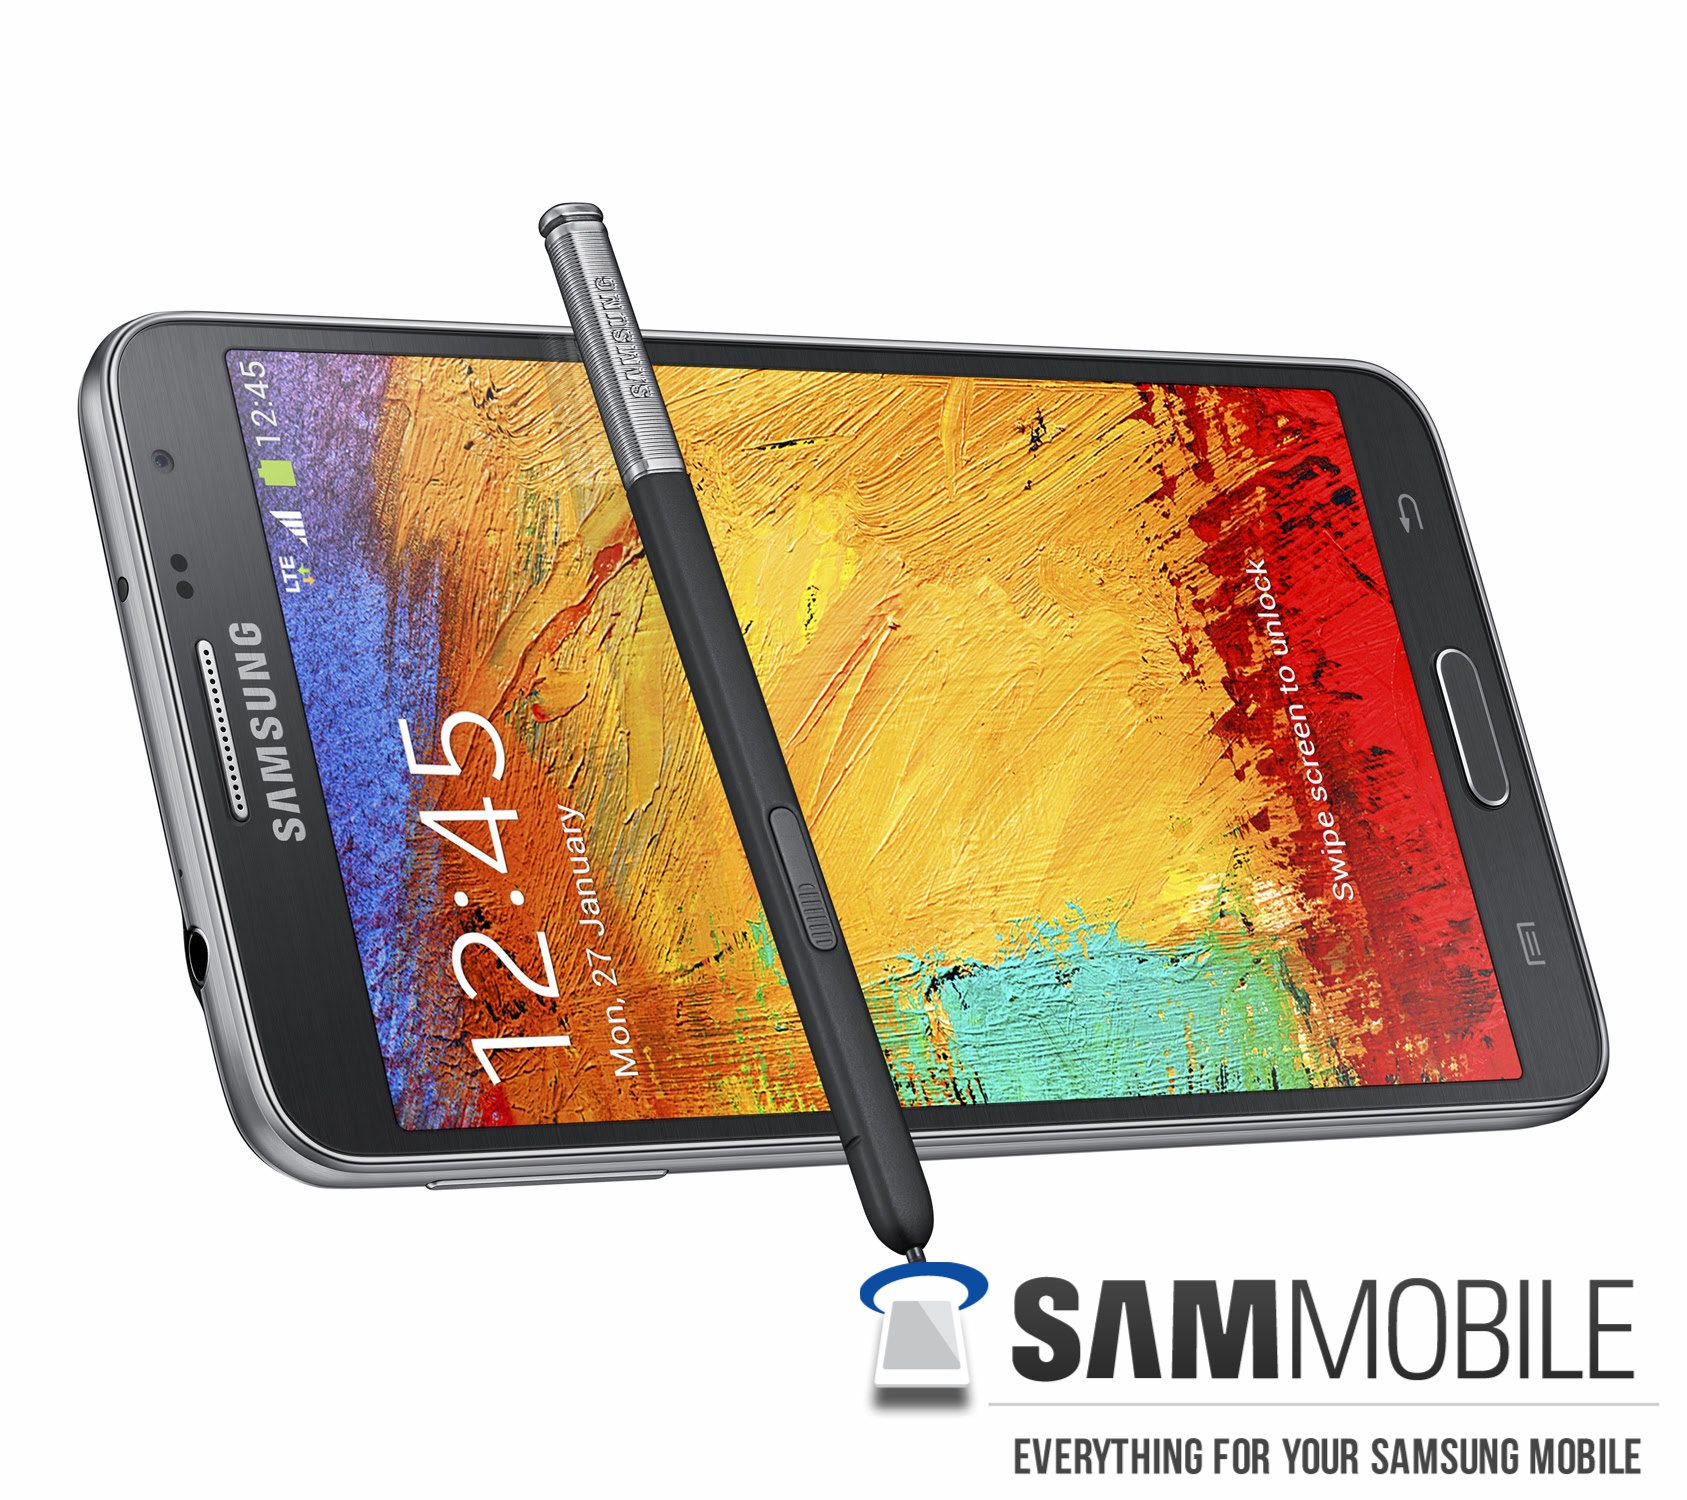 Samsung Galaxy Note 3 Neo offical Pantalla de lado y S-Pen